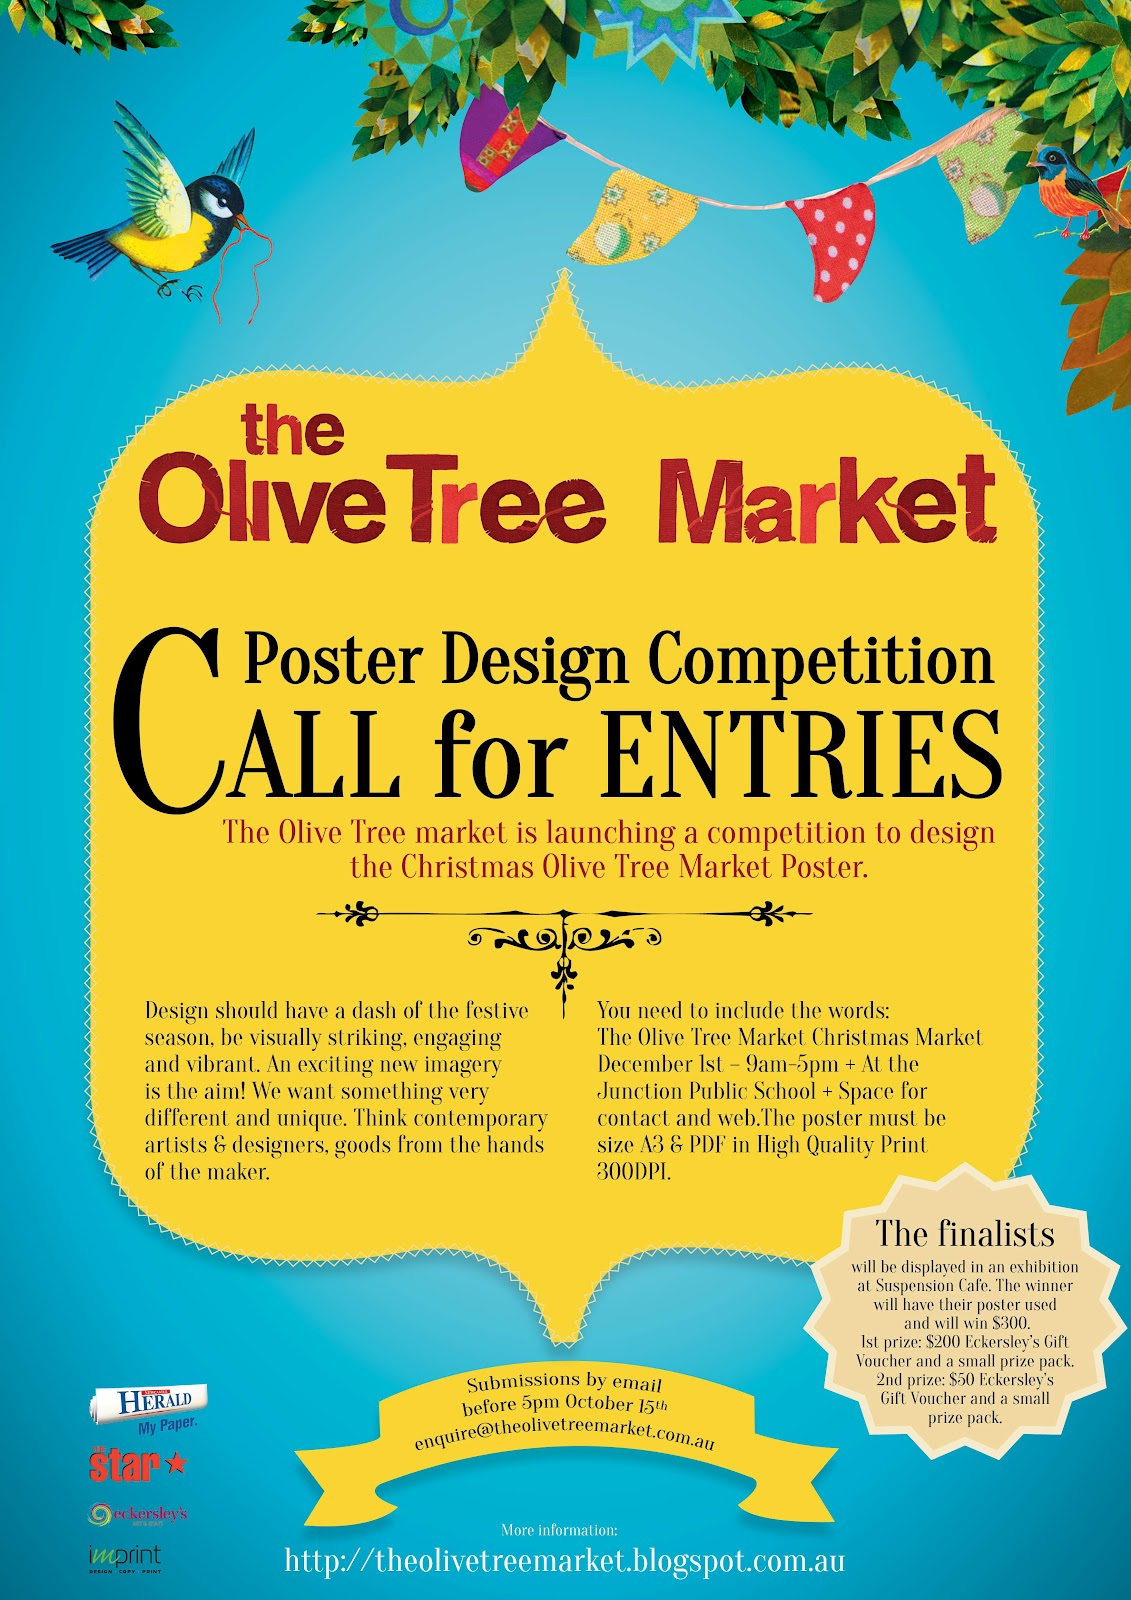 Poster design competition - The 2nd Place Will Win A 50 Eckersleys Gift Voucher Small Prize Pack 50 Olive Tree Market Gift Voucher So Start Thinking And We Can T Wait To See